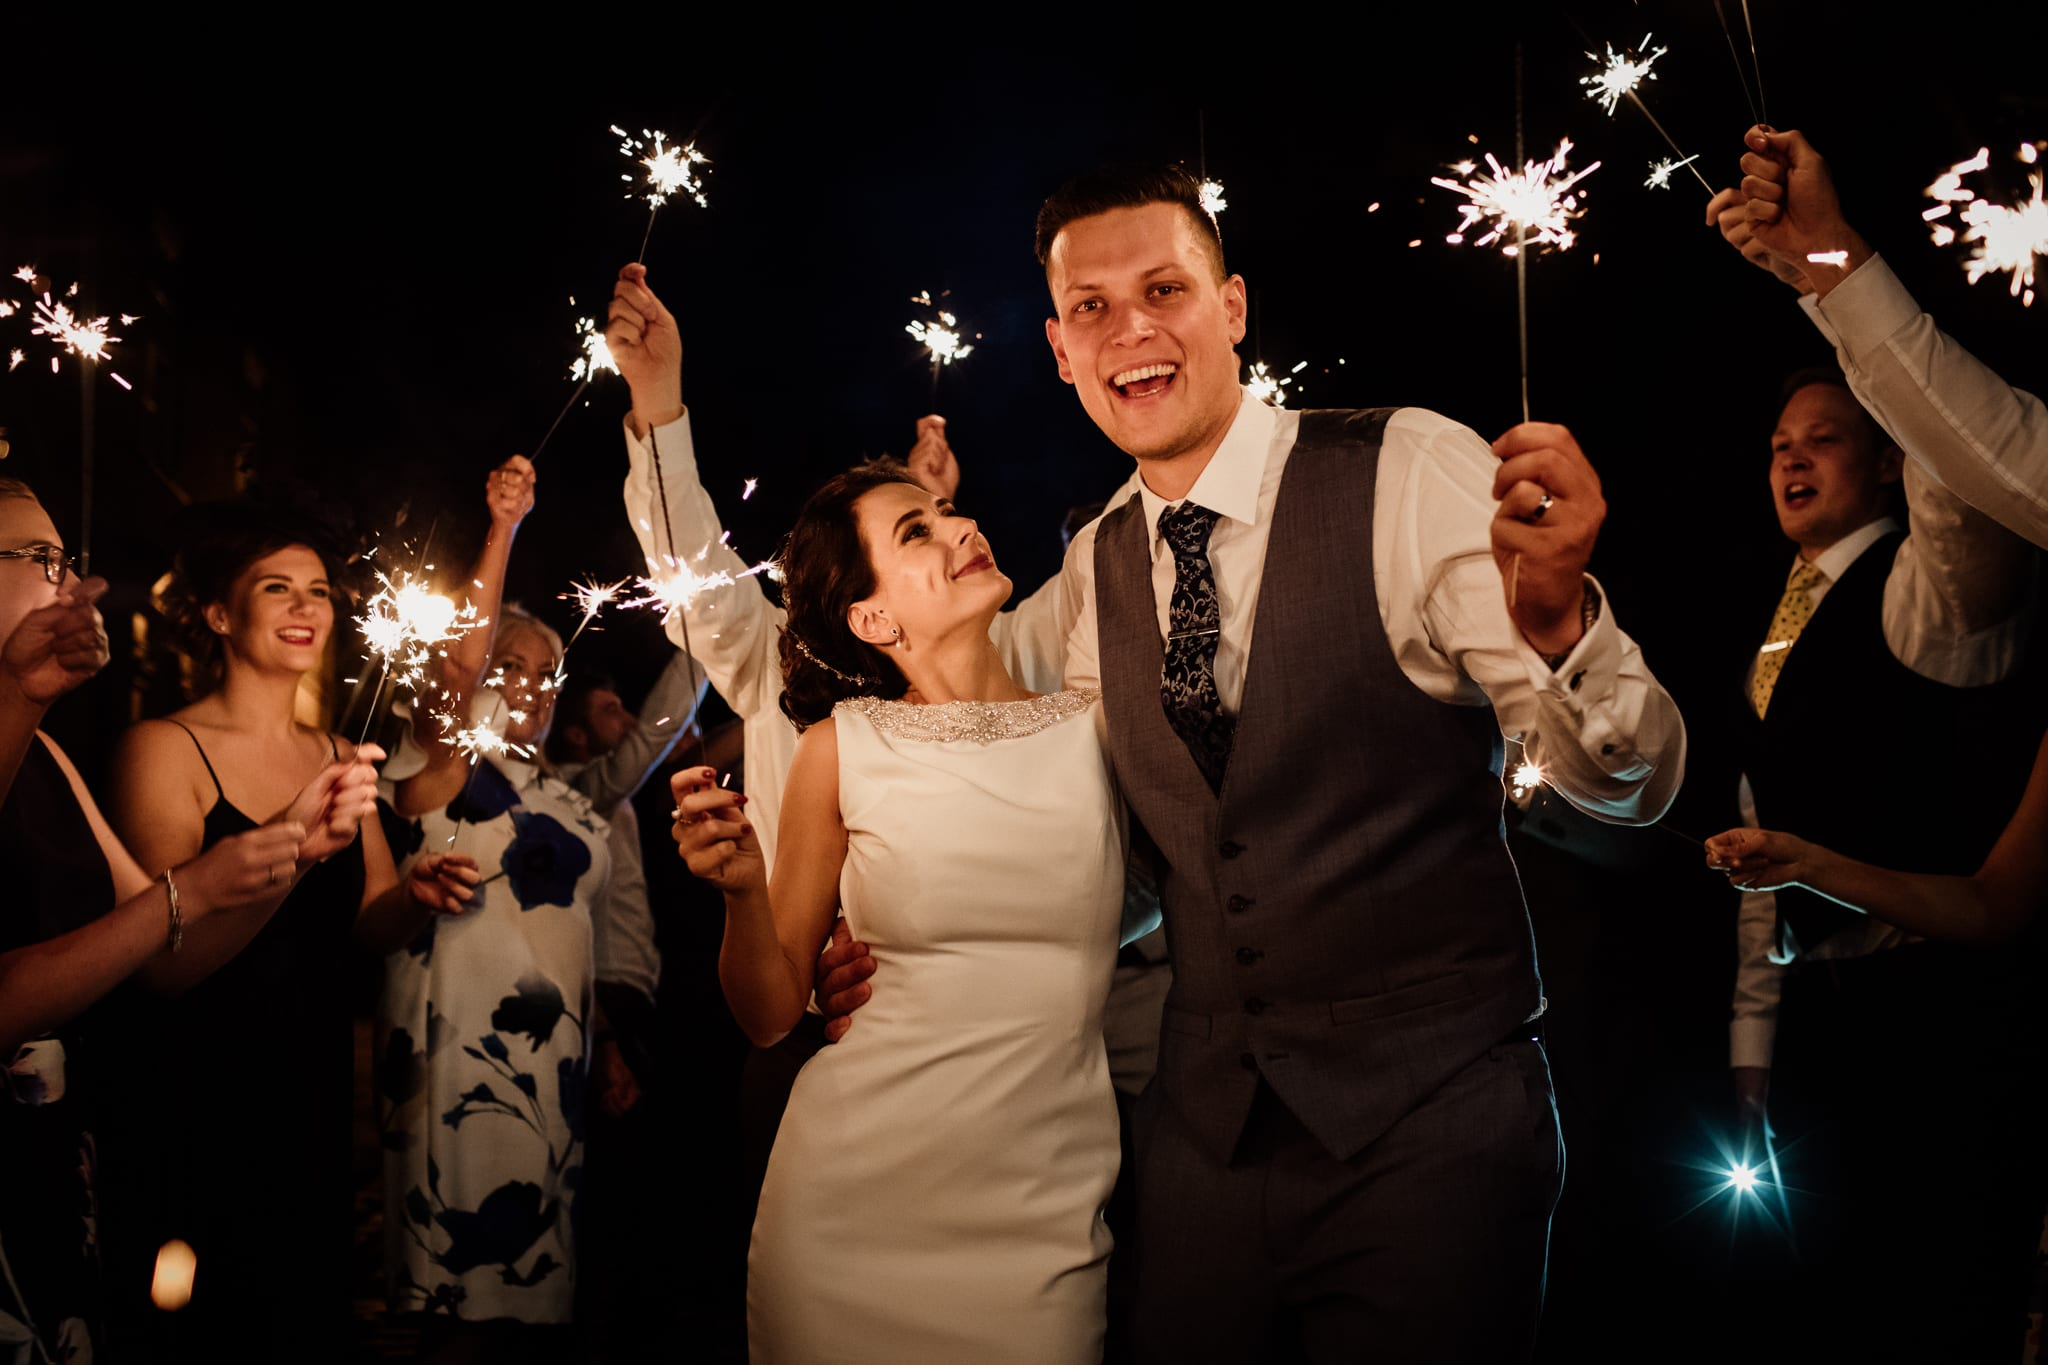 Sparklers at a wedding - yes please!